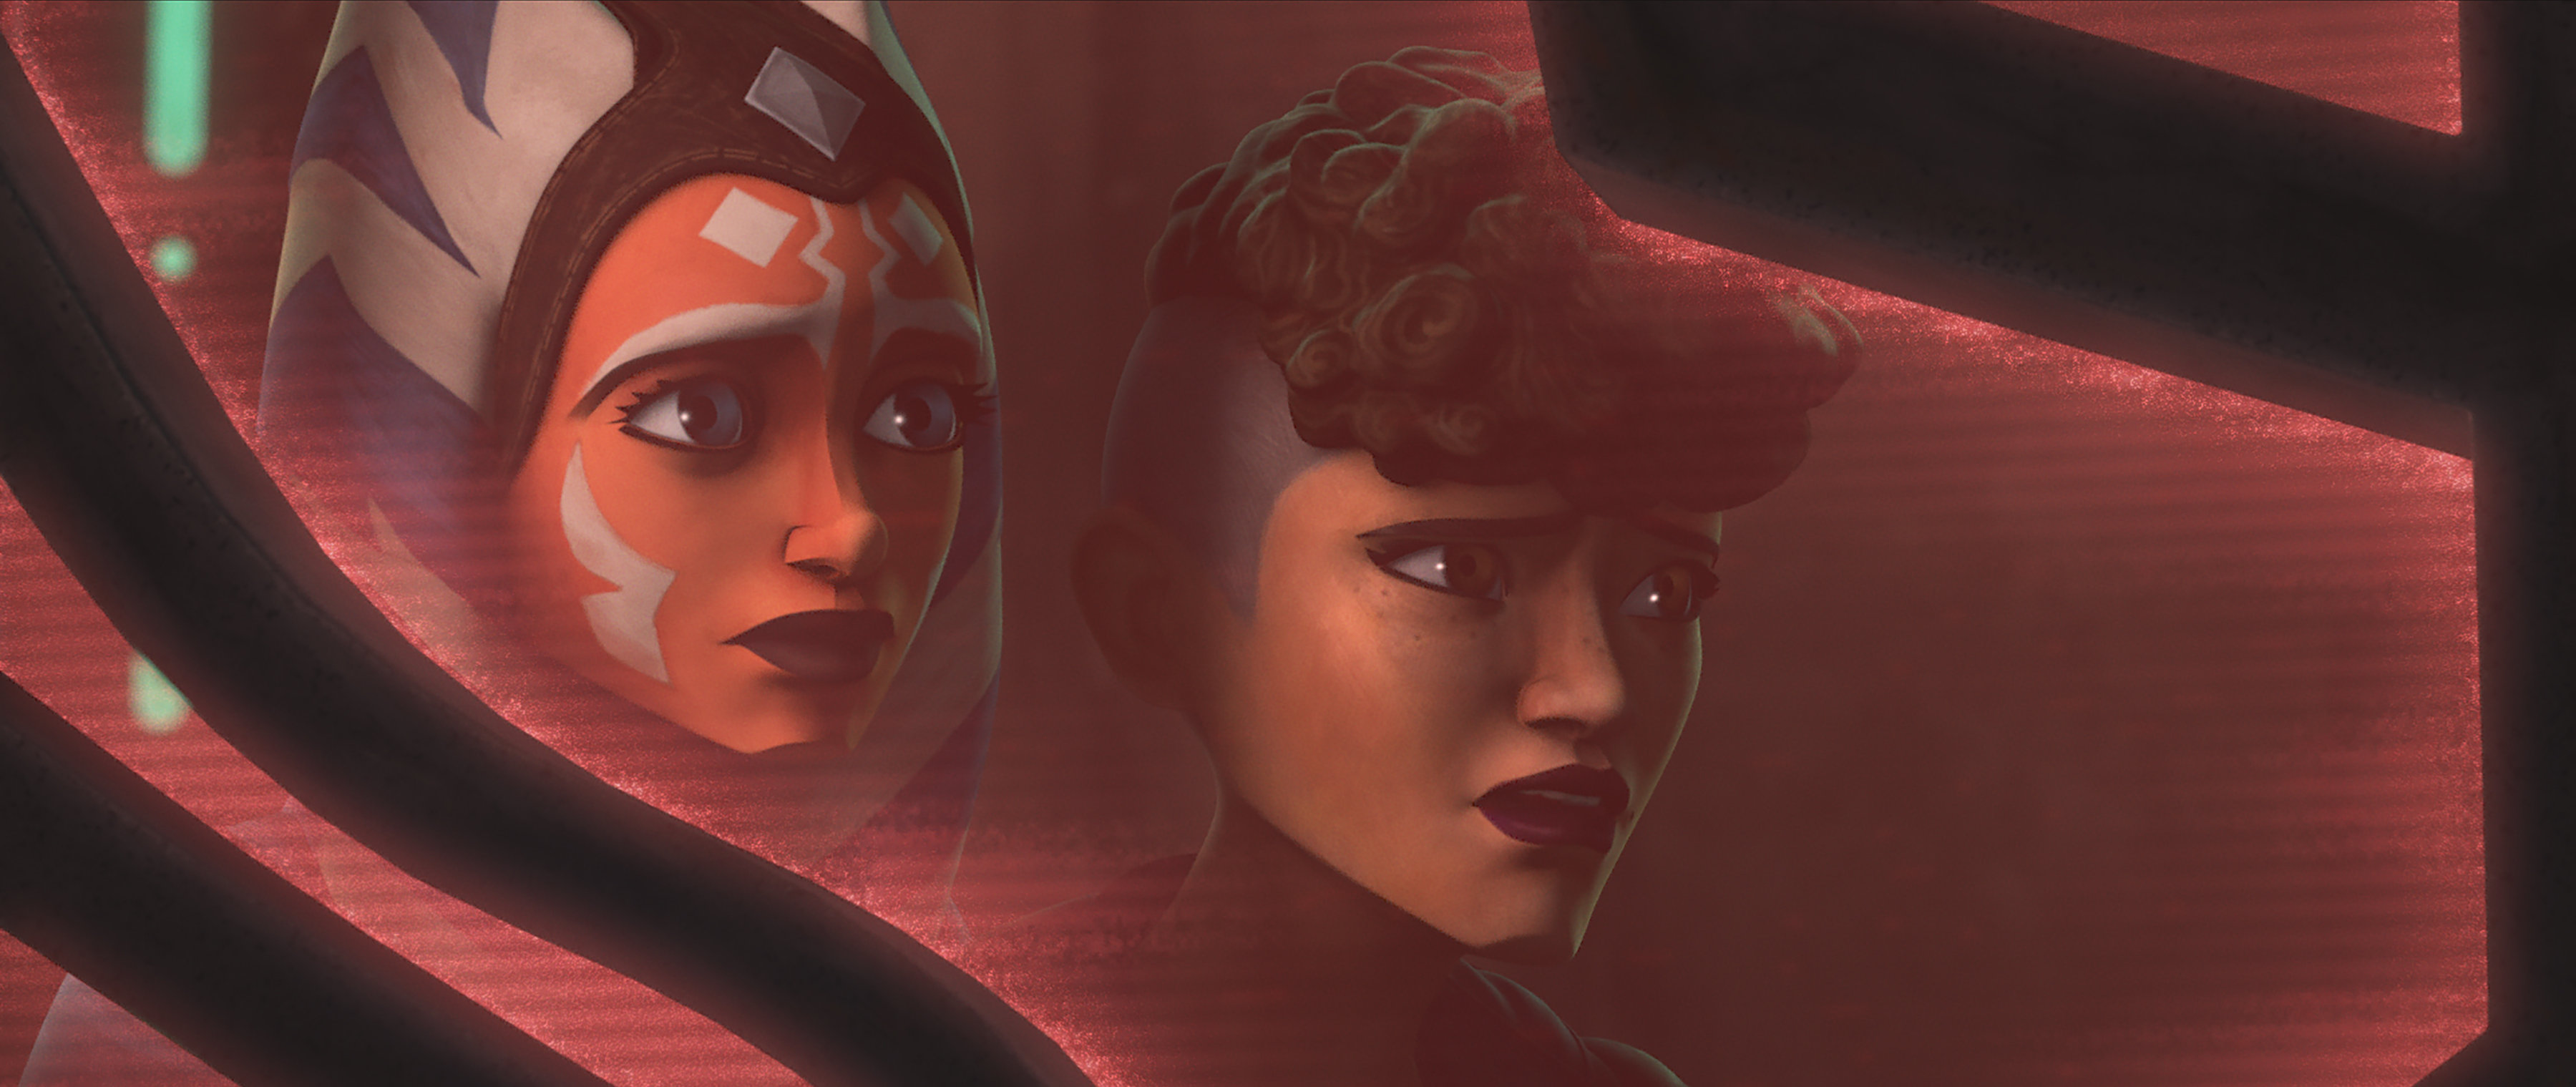 Clone Wars Teaches Ahsoka The True Gulf Between The Jedi And The People They're Meant To Protect